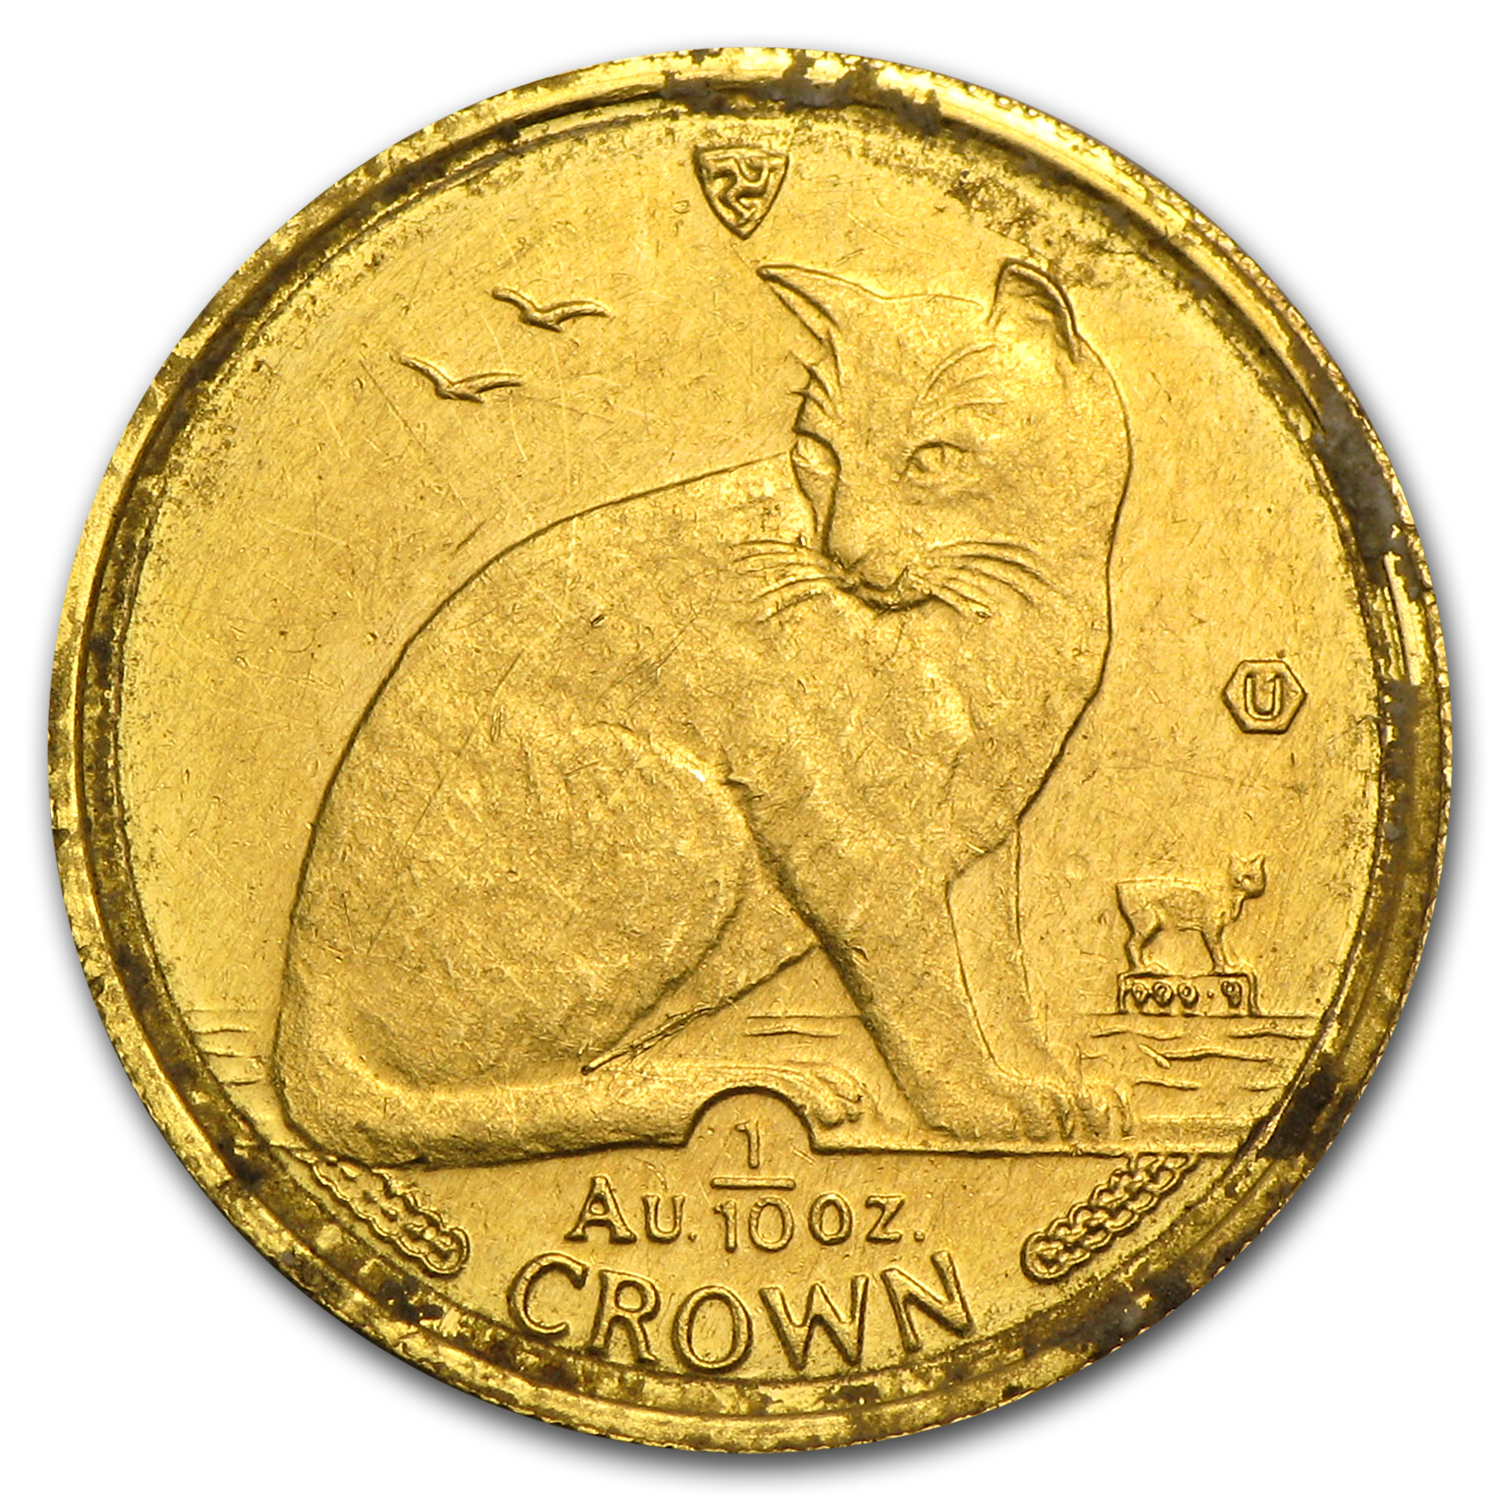 Isle of Man (1/10 oz) Gold Cat Coins Abrasions